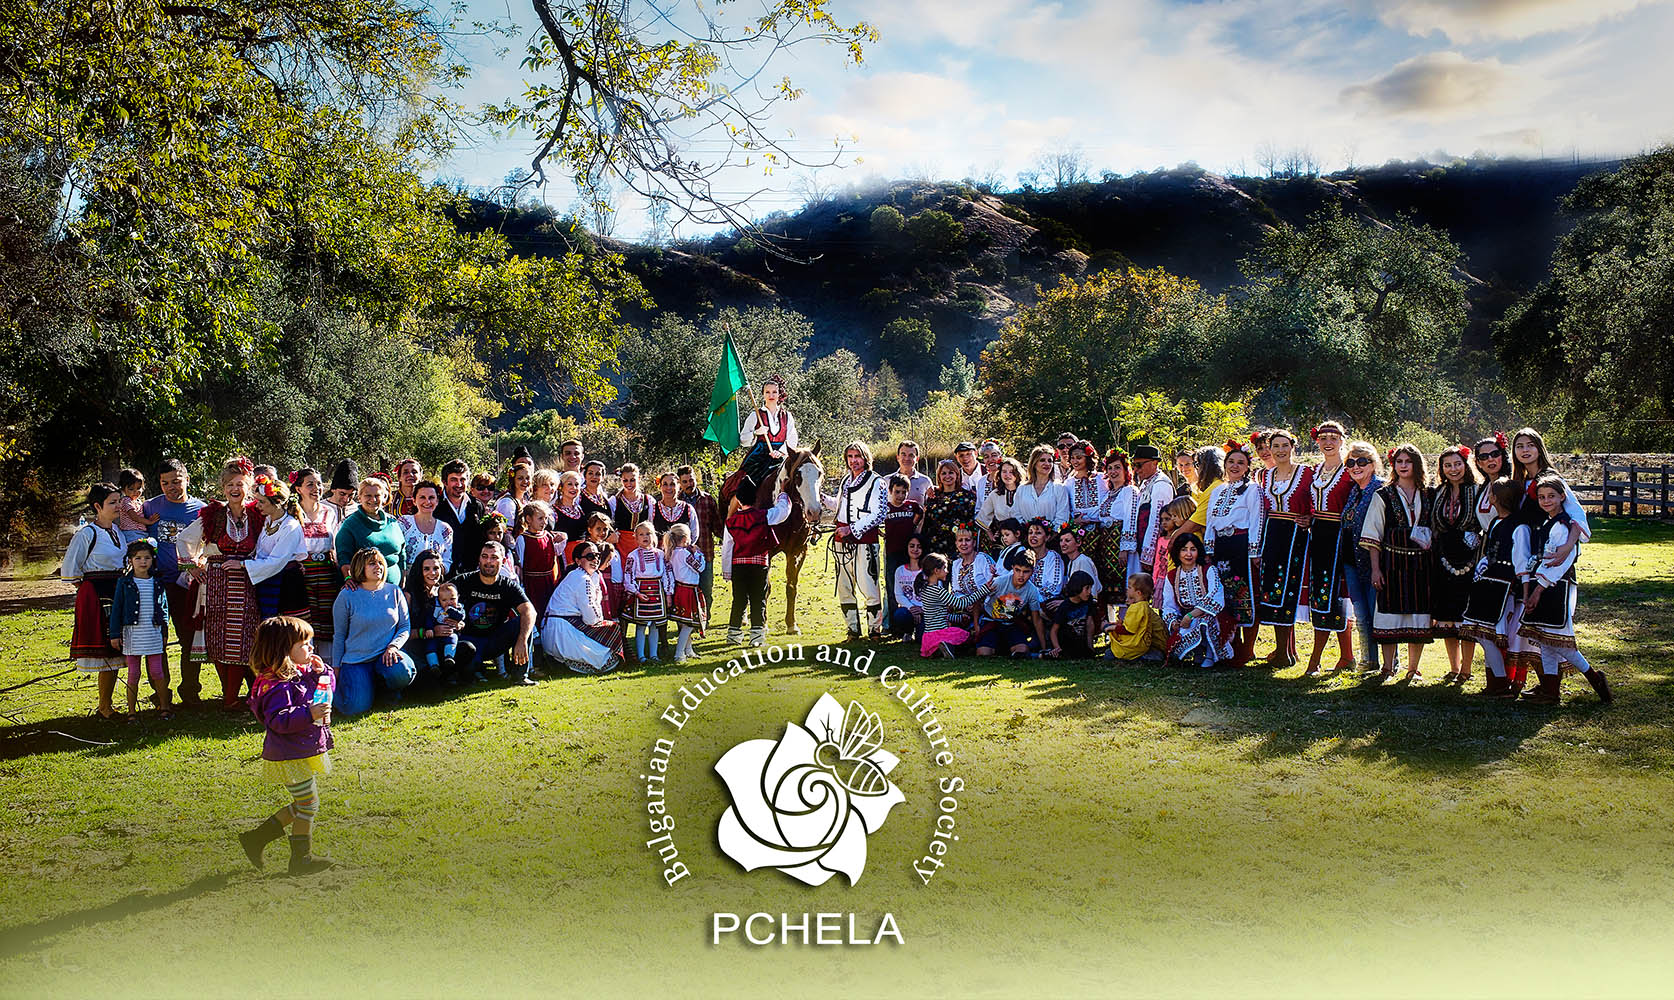 PCHELA-BULGARIAN_SOCIETY-US-0